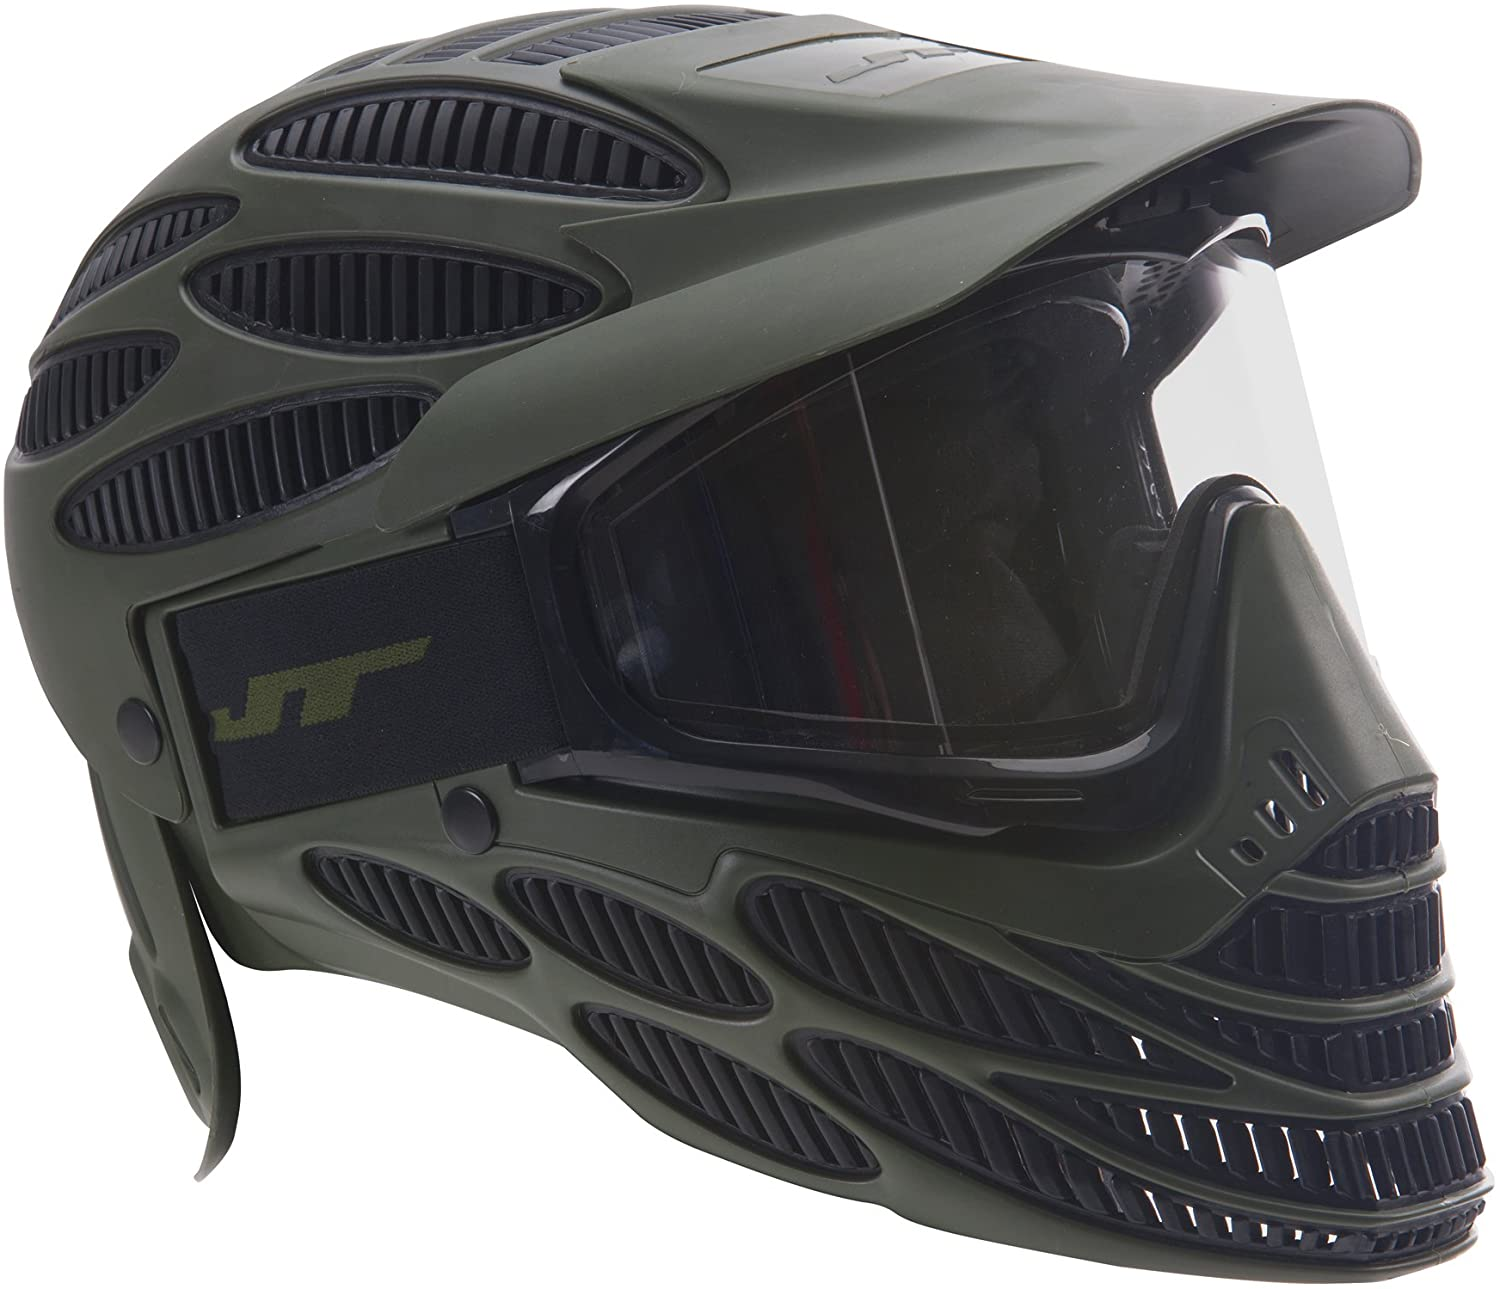 JT Spectra flex 8 paintball mask for kids